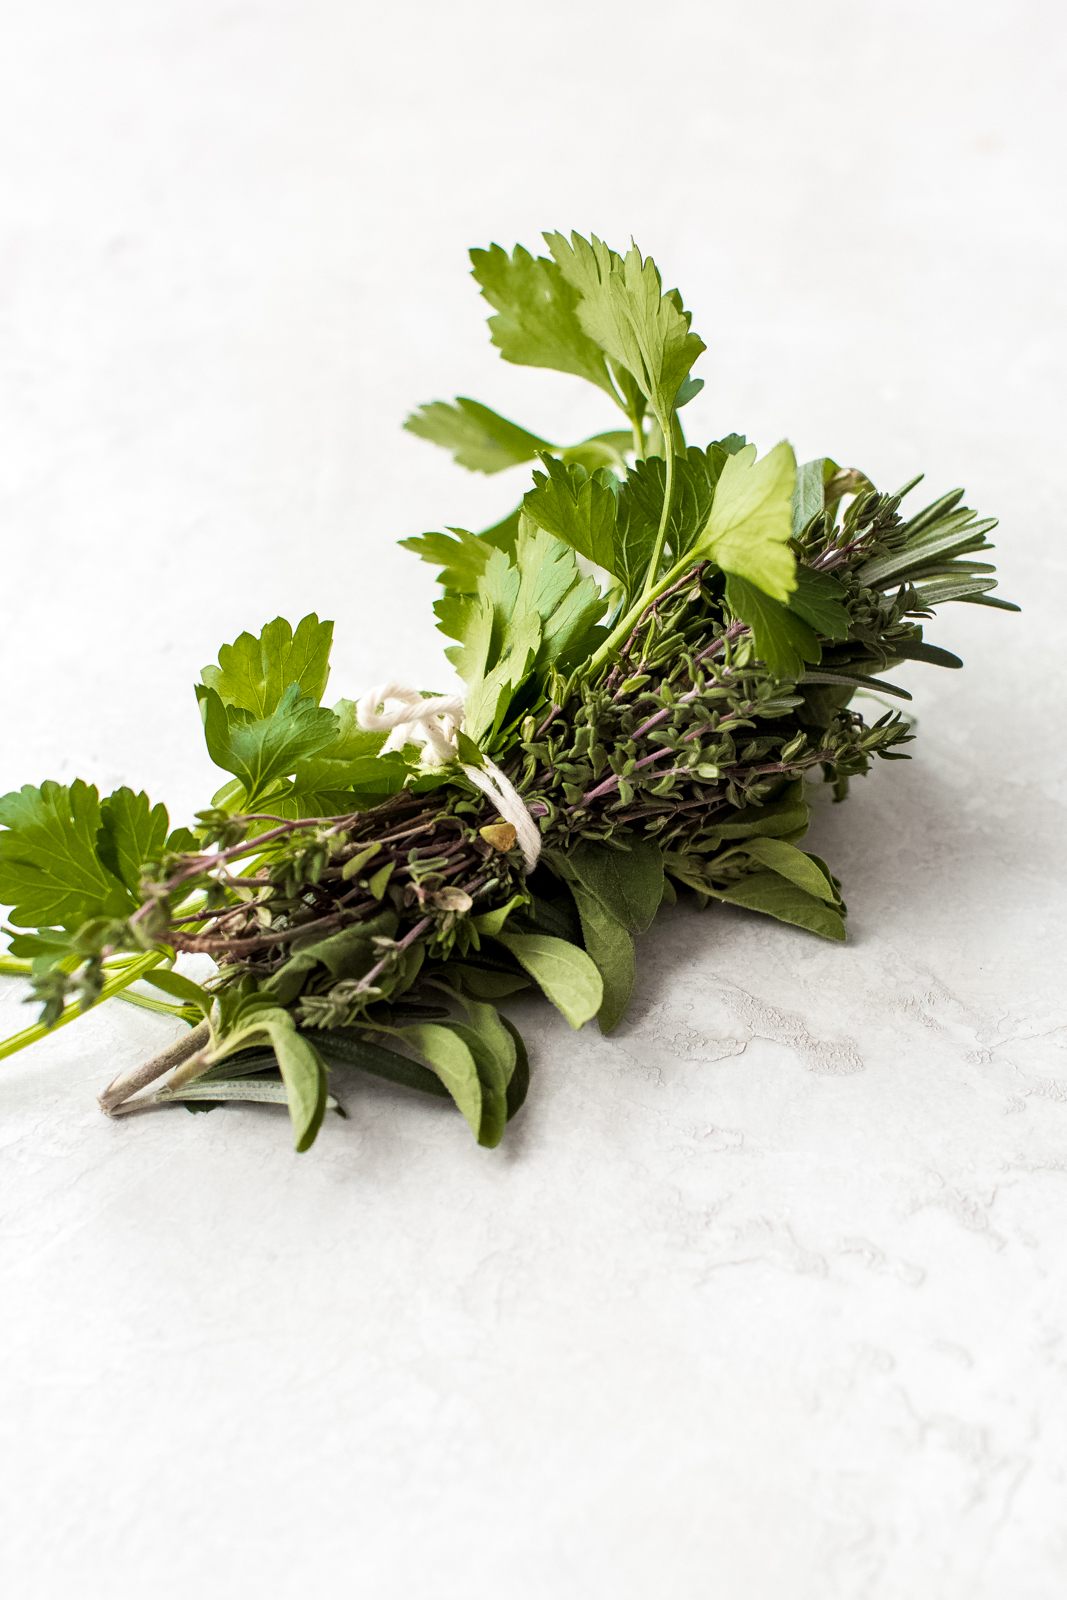 bouquet of fresh herbs tide with kitchen twine on grey surface